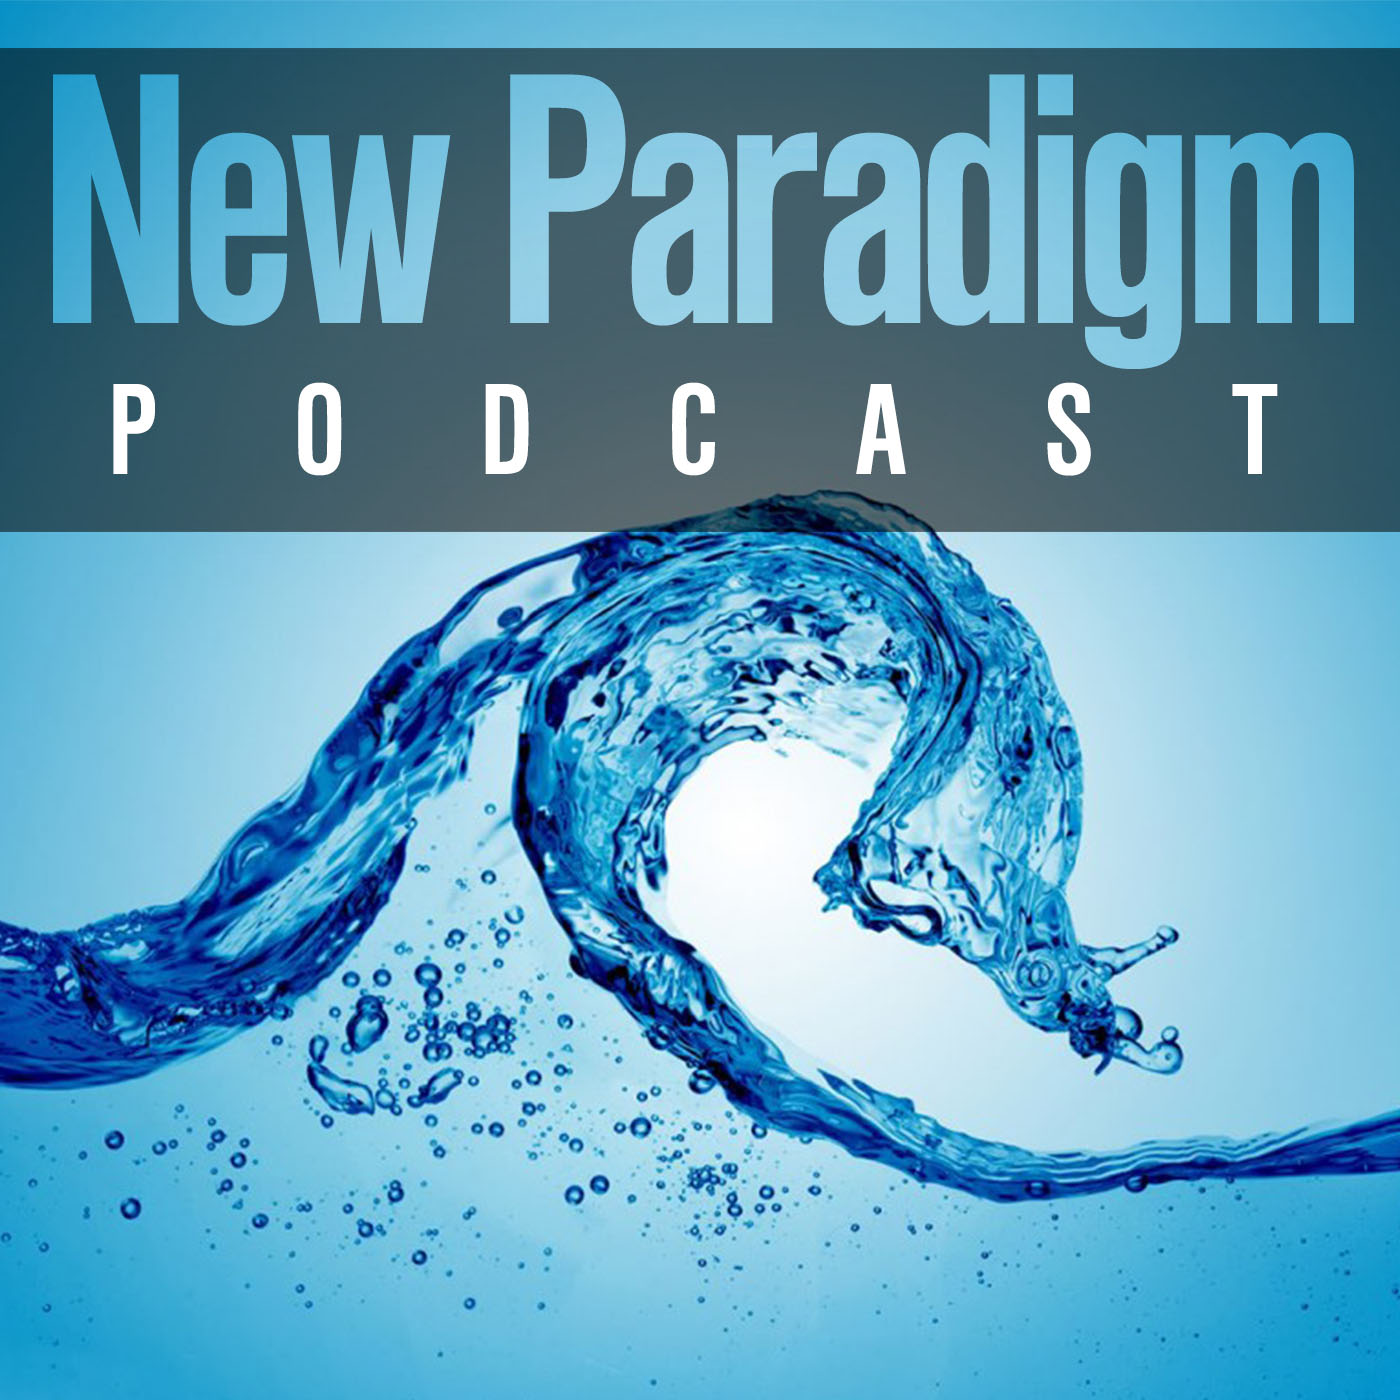 The New Paradigm Podcast – Morten Hake and The New Paradigm Podcast